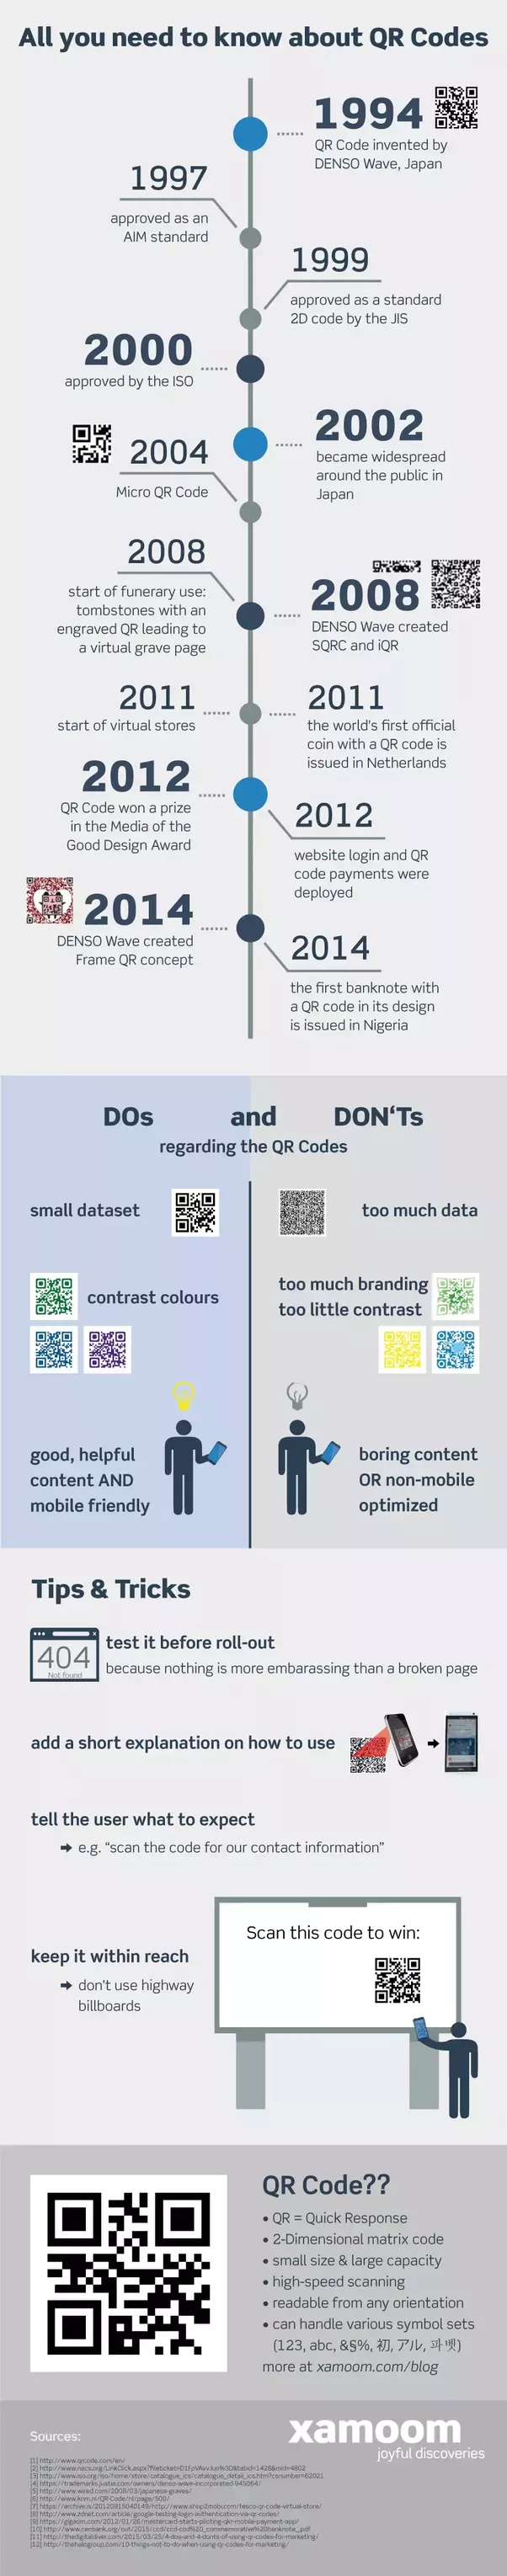 What is a QR code? How is information stored in it? - Quora